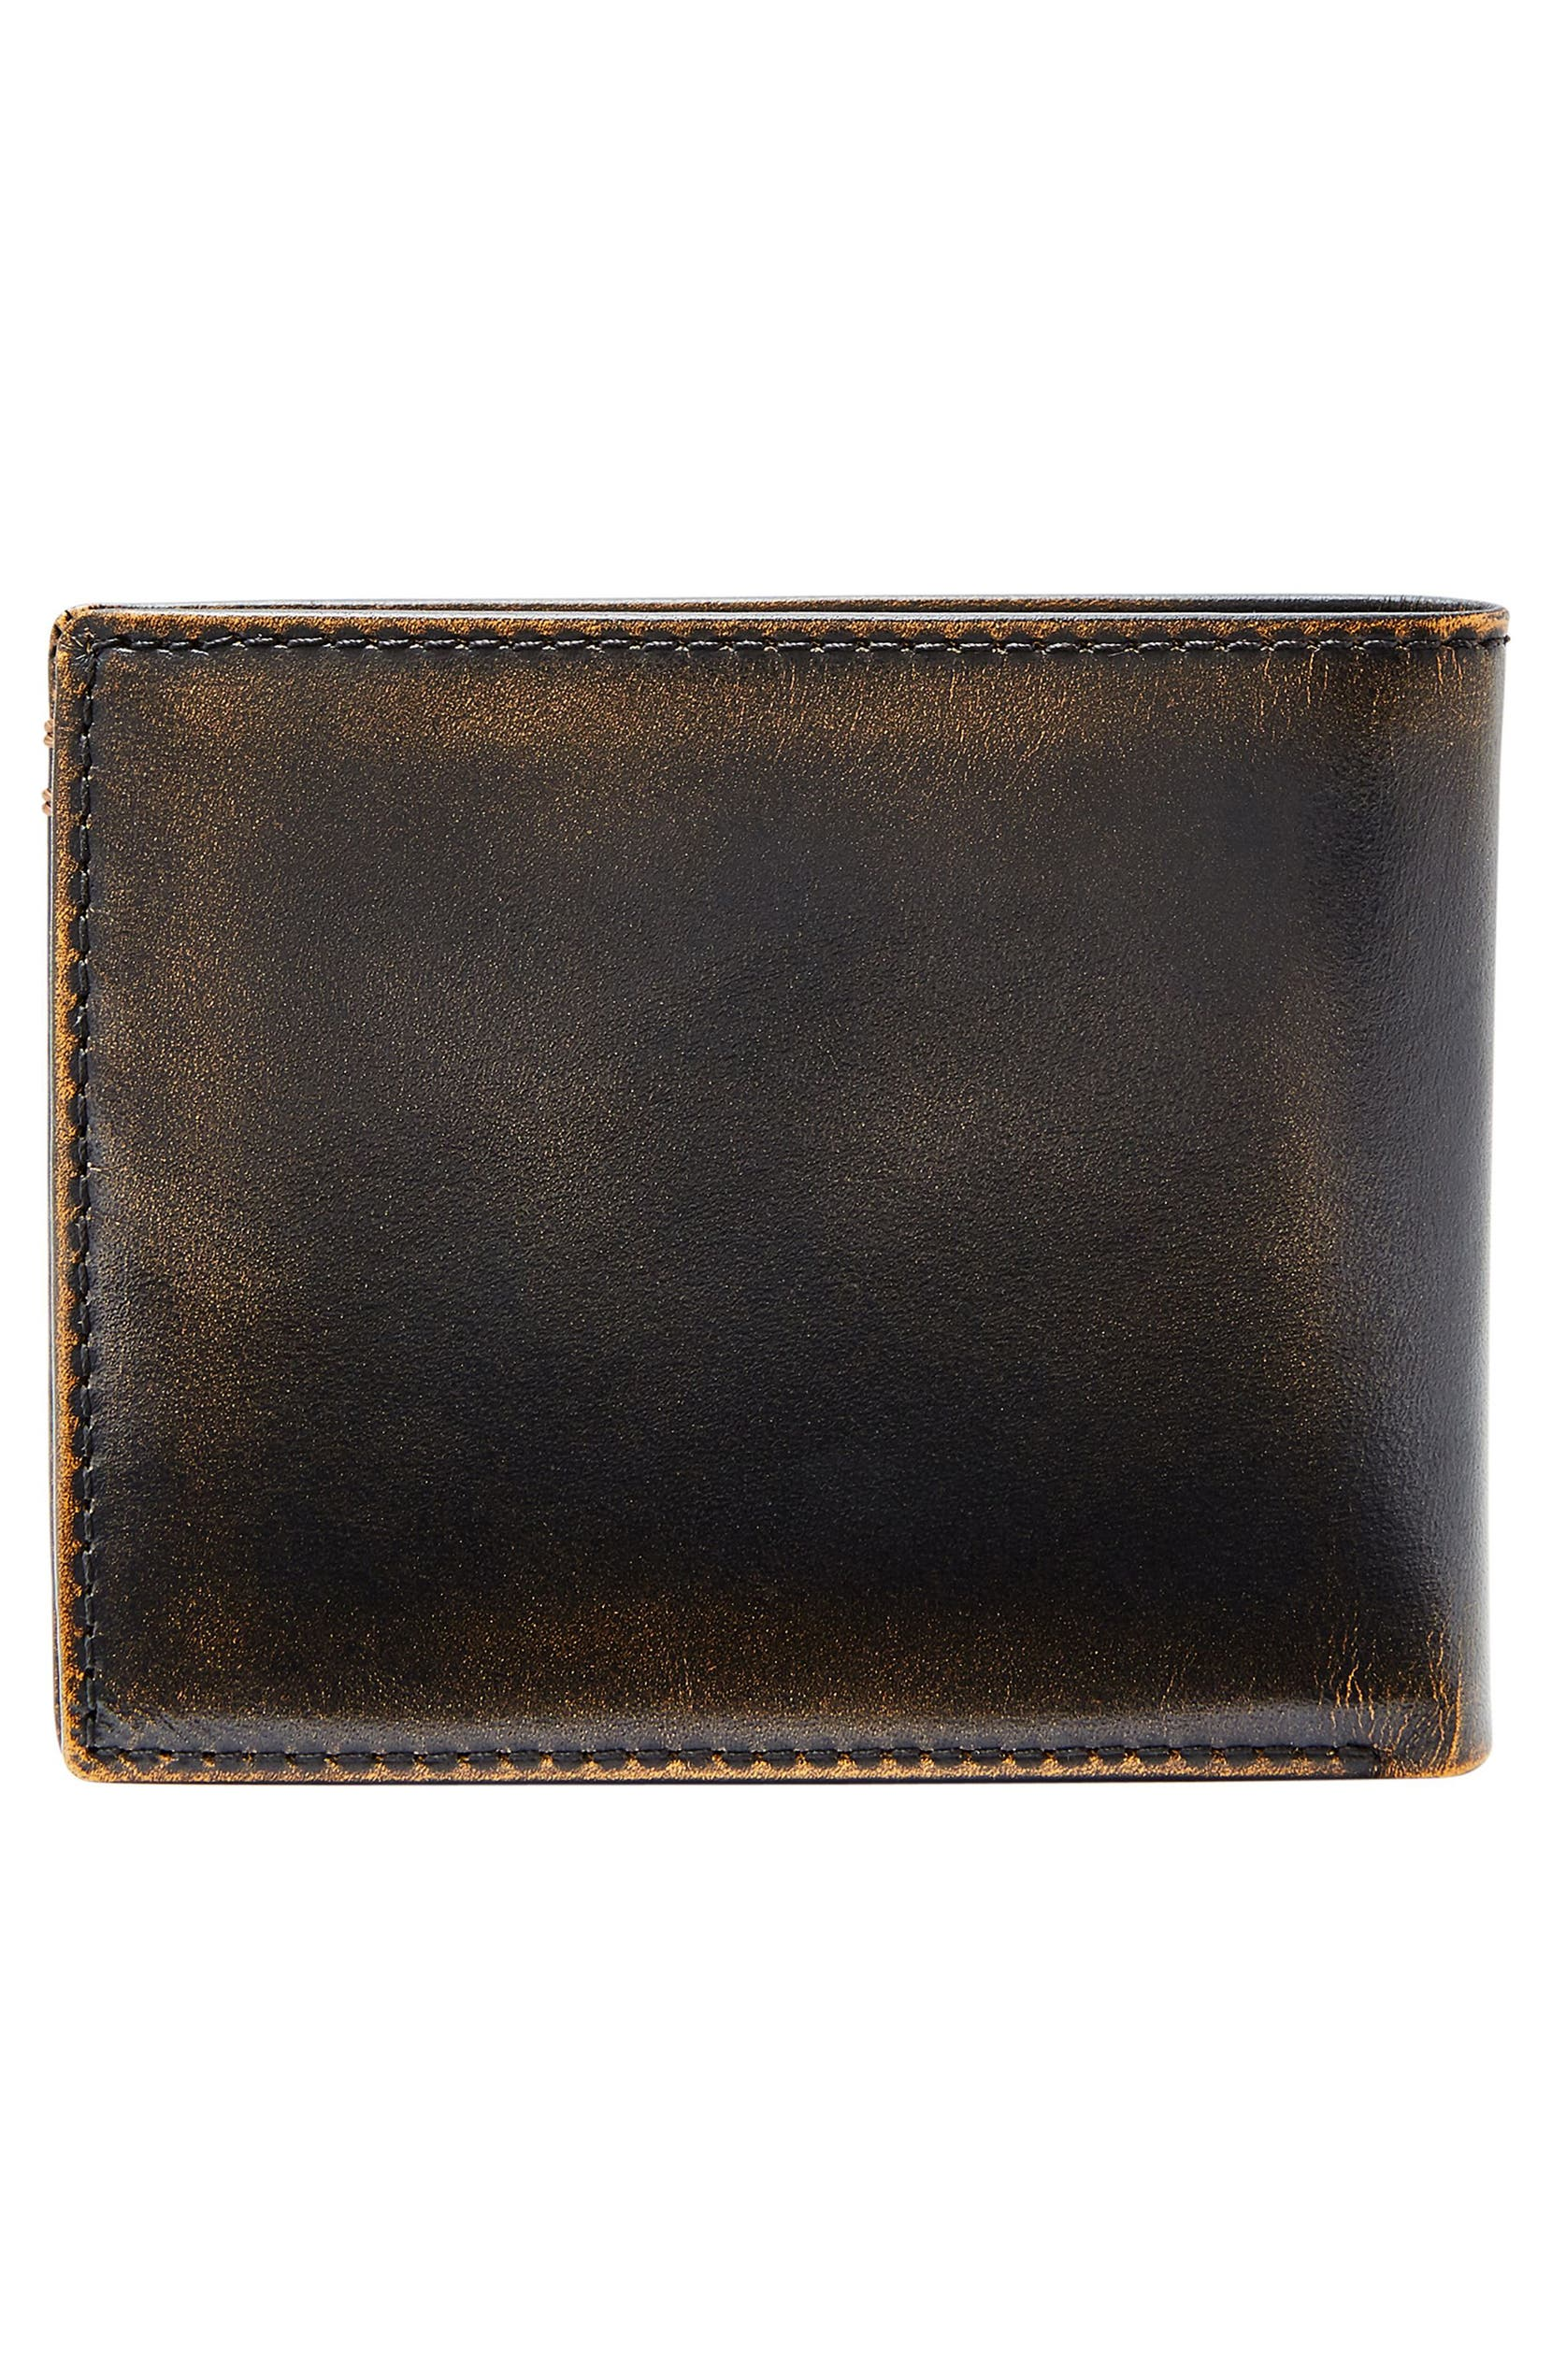 8cd72aba95b0bf Fossil Wade Leather Wallet | Nordstrom